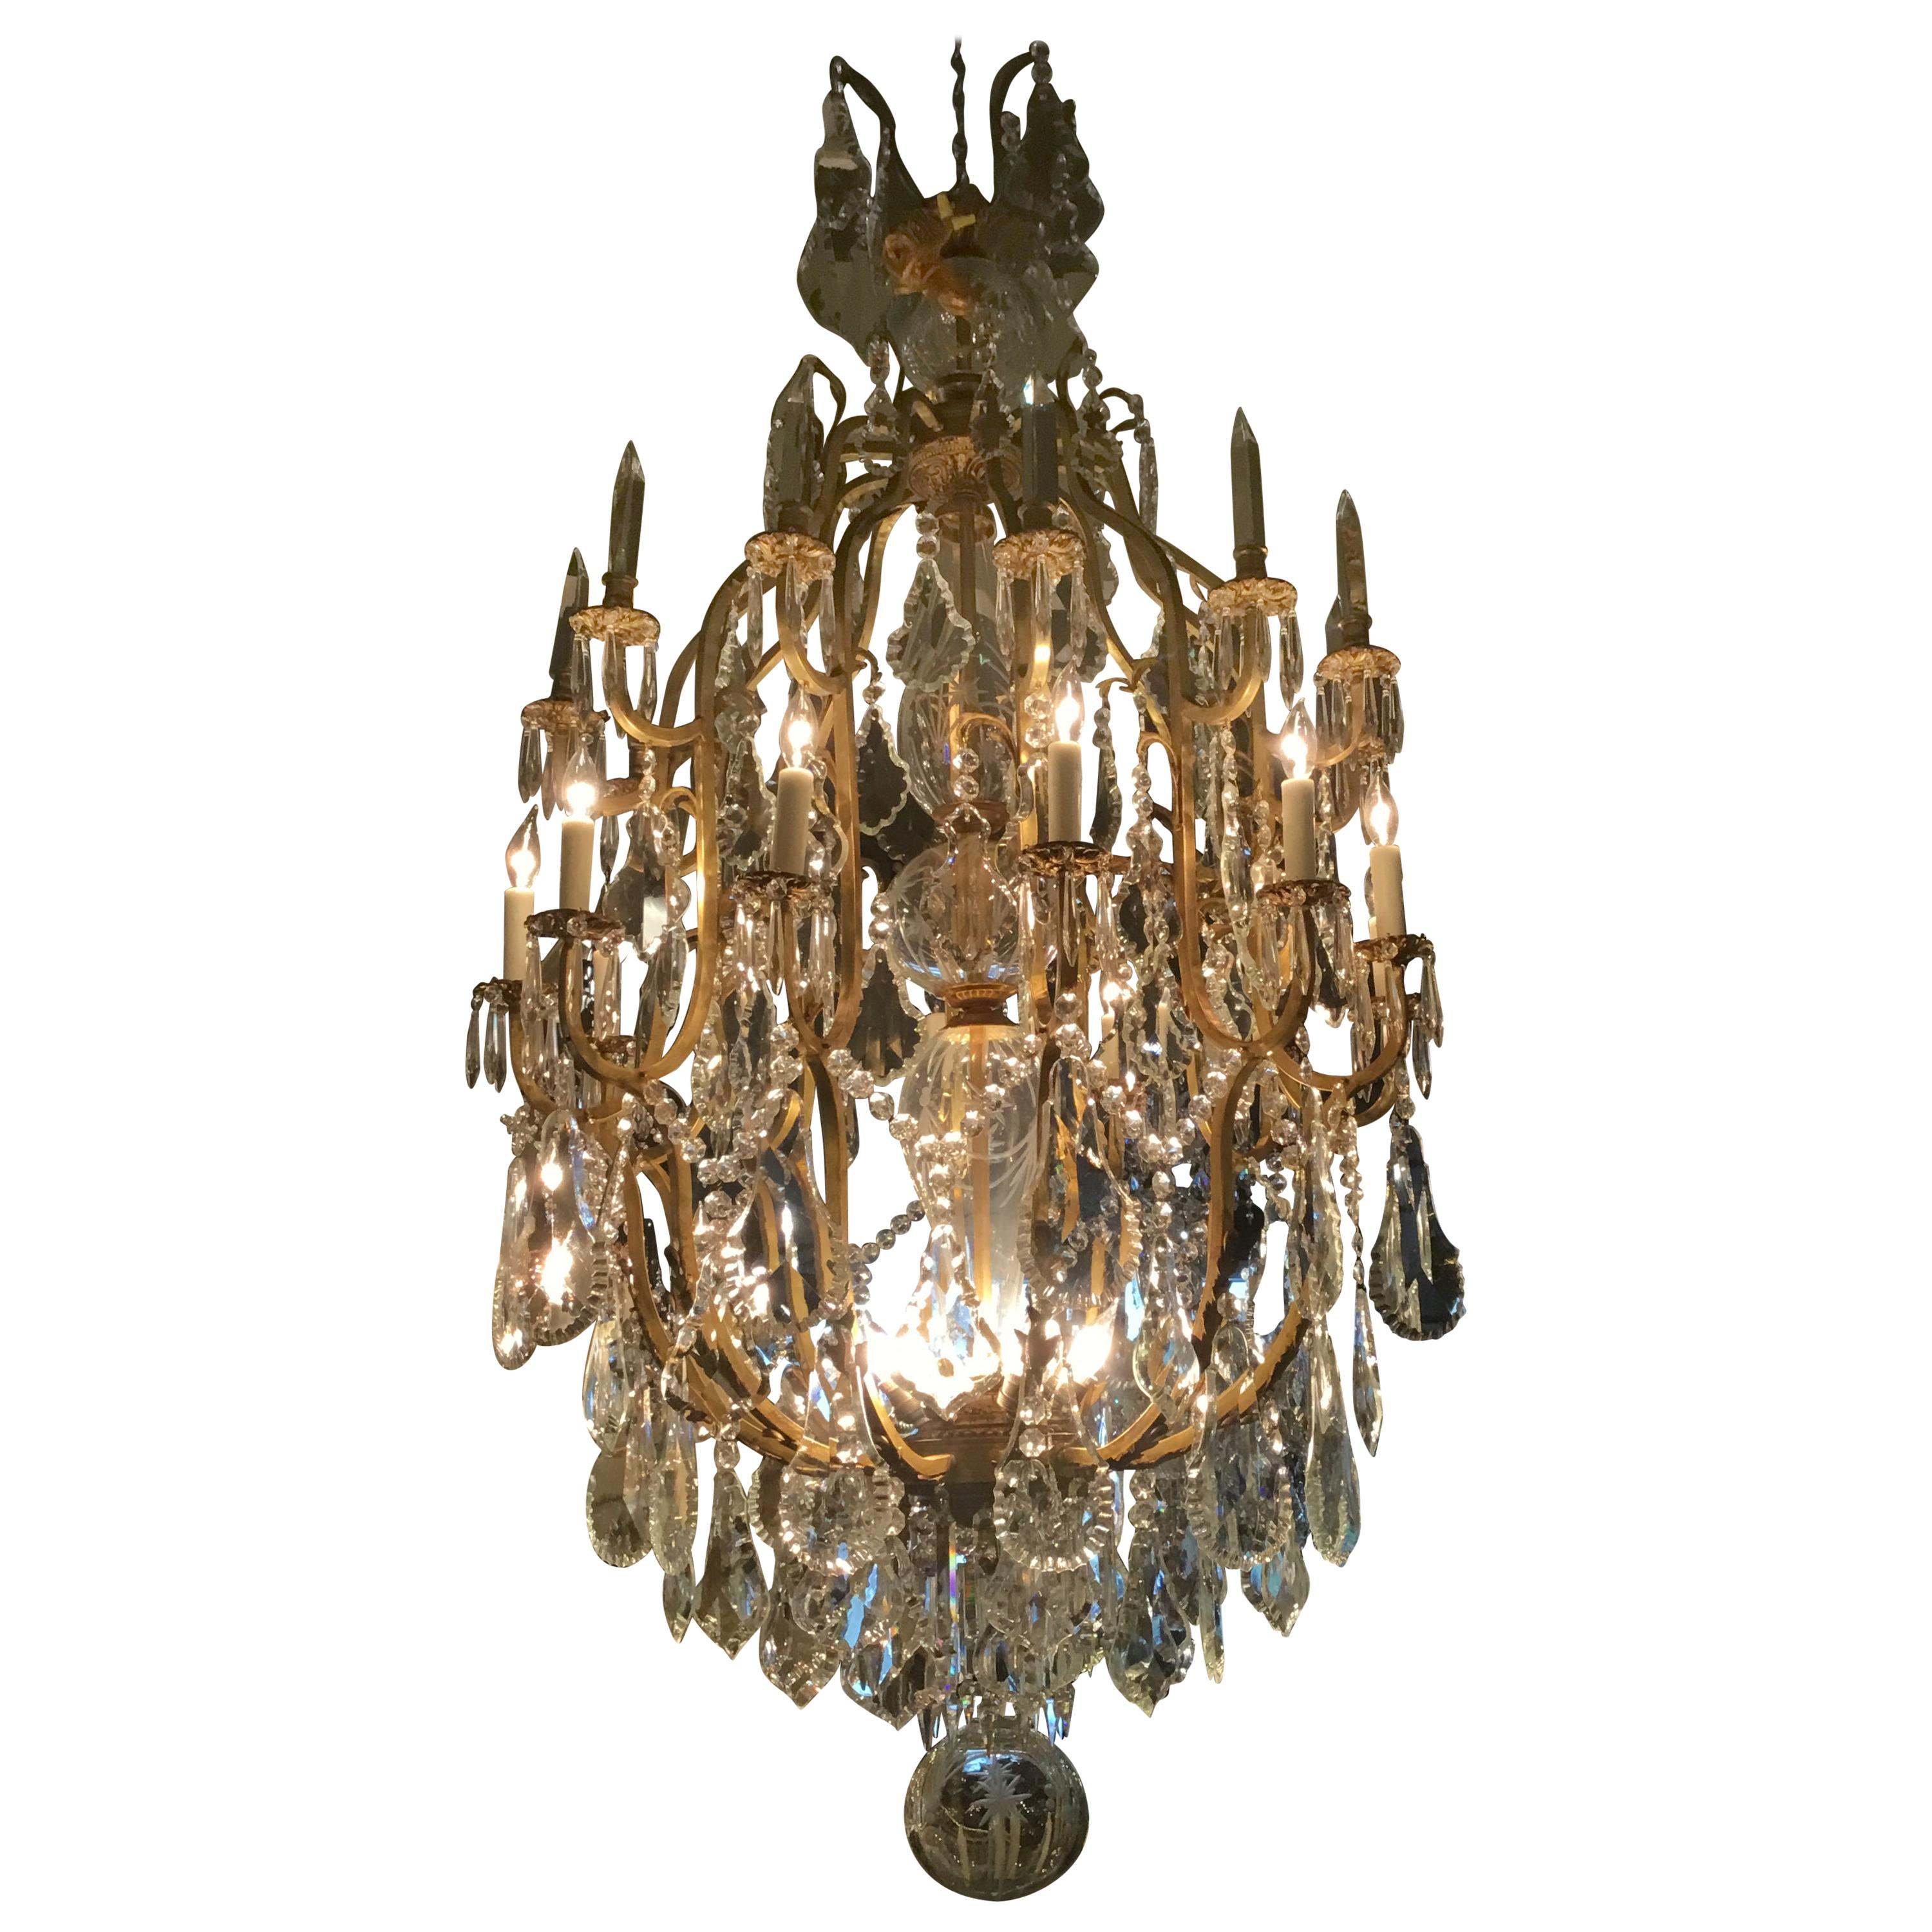 Monumental Italian Crystal and Bronze Chandelier with 20 Lights and Crystal Stem